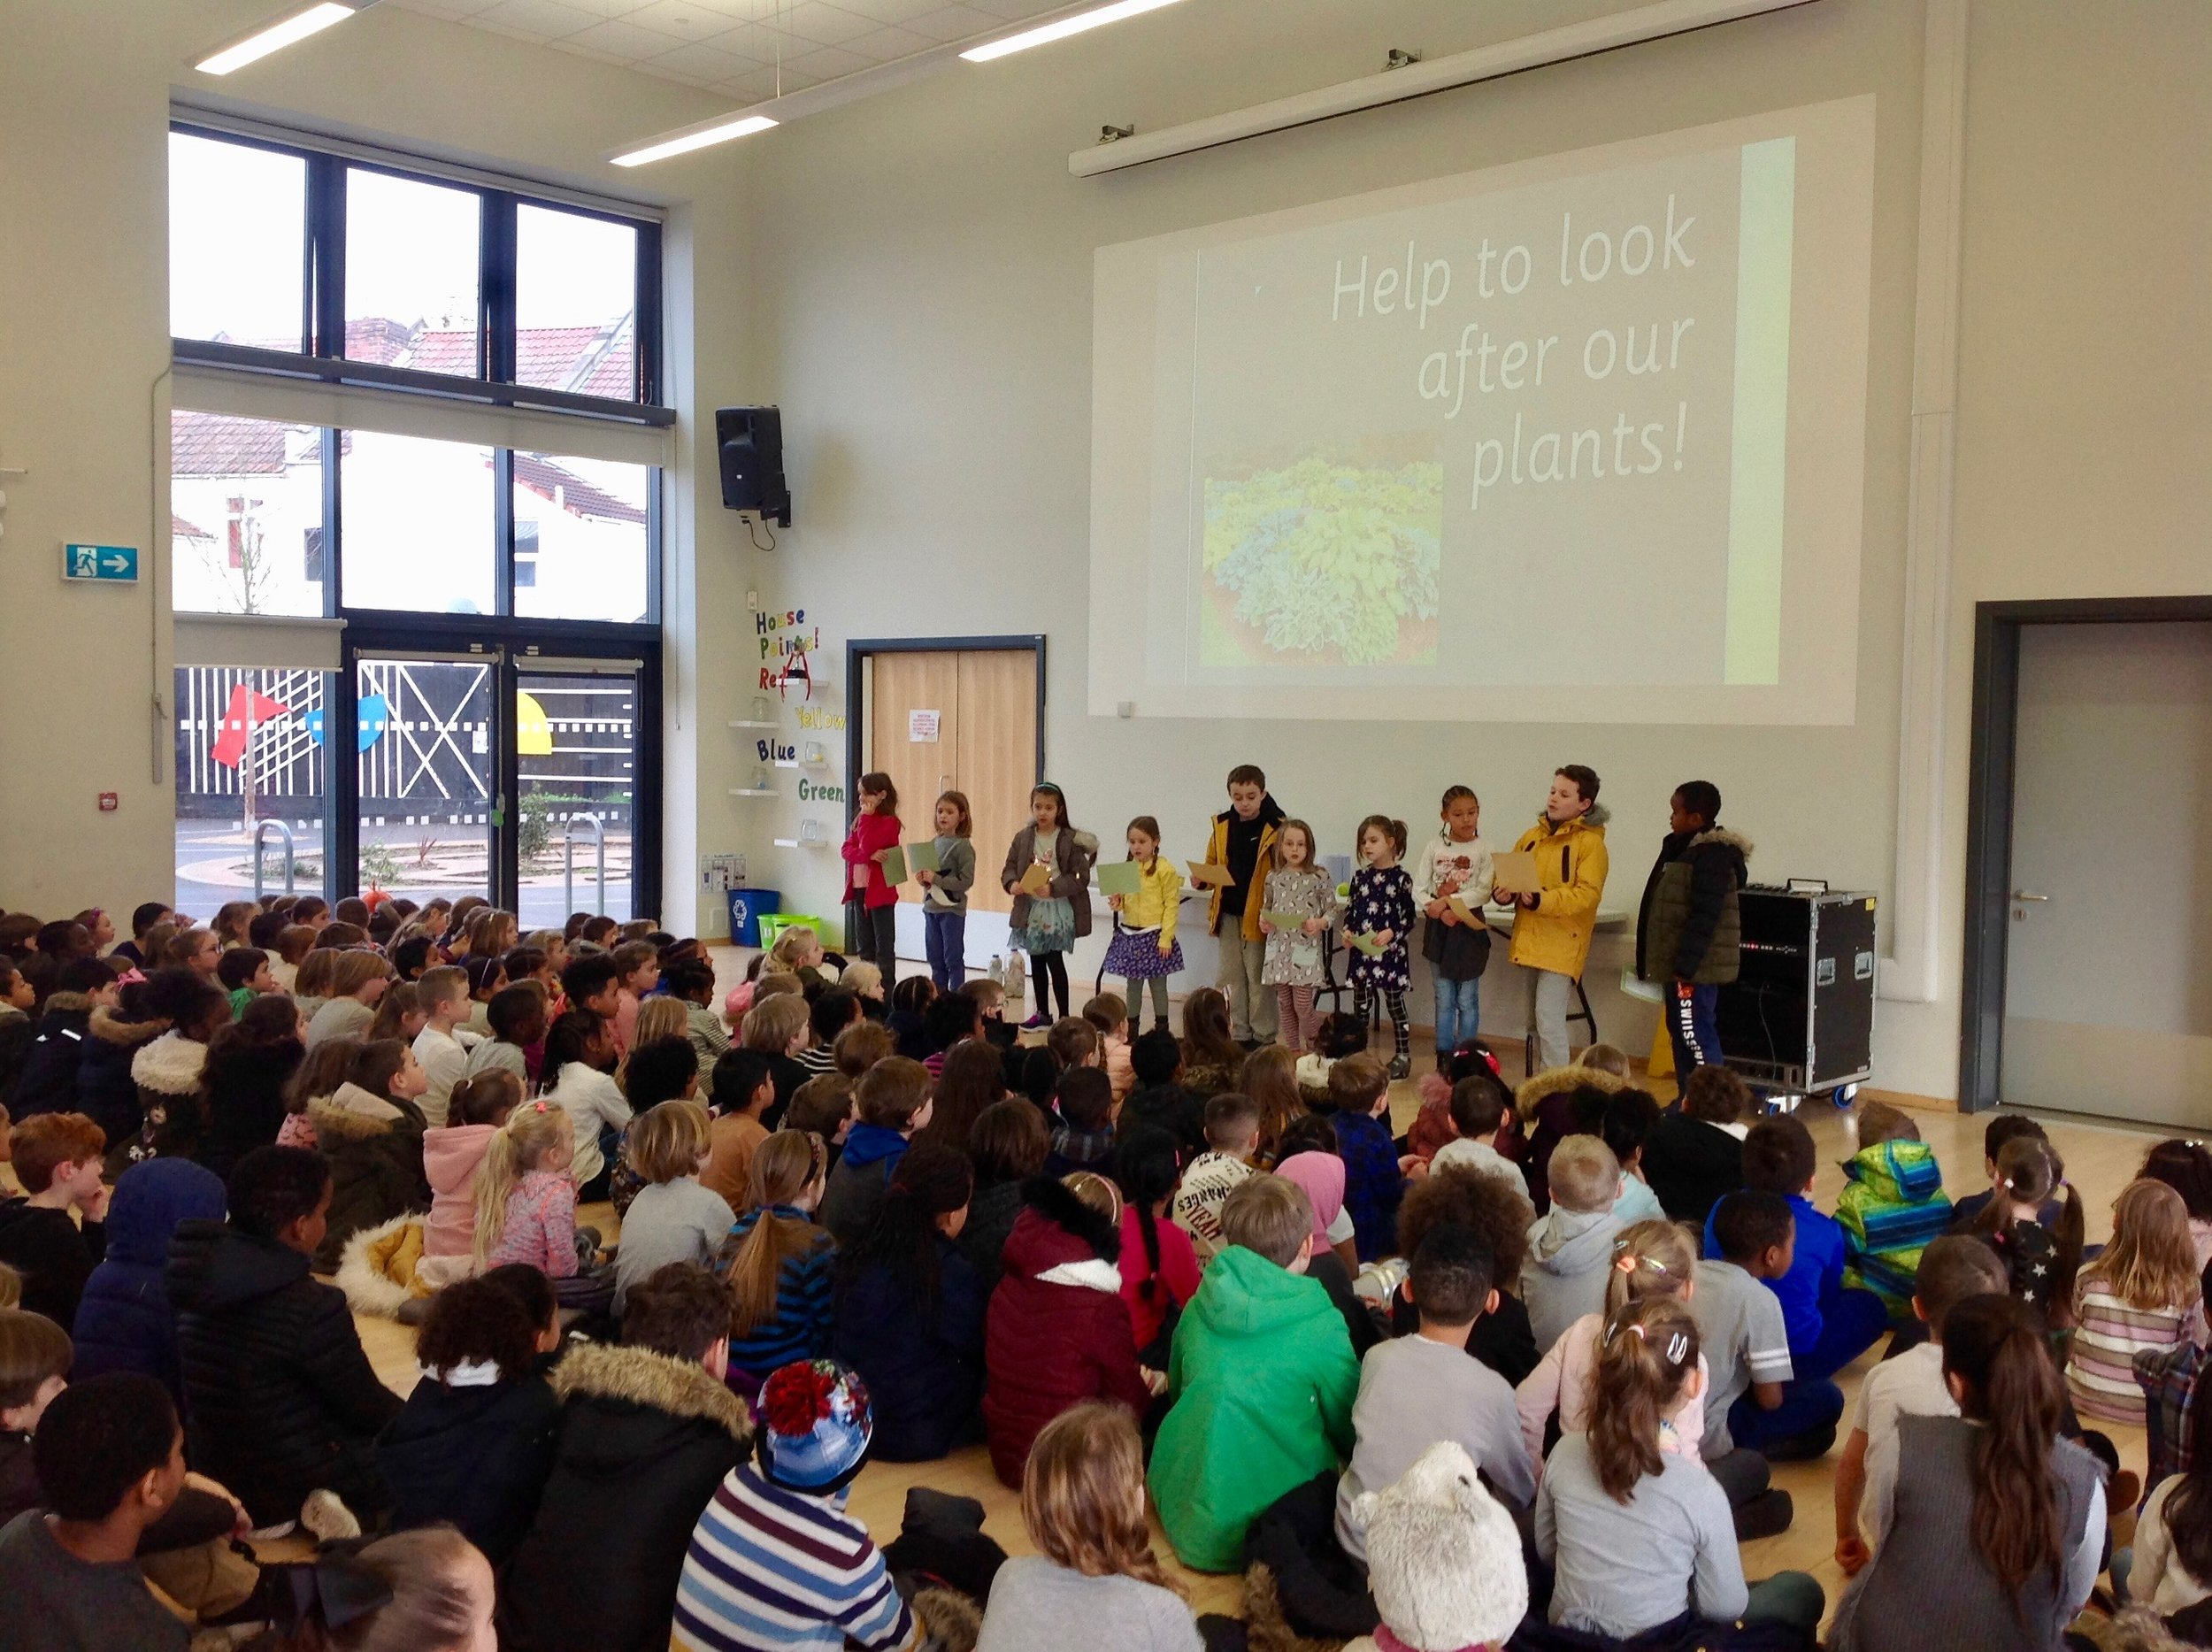 Eco-Team assembly - To start off the year the Eco-Team took the opportunity to speak to the whole school in assembly and let them know what they have been up to since September.Collectively the children decided on some key areas that they wanted to talk to the school about. These focused on the school grounds: the use of the mindful maze, looking after the plants, how we are treating the animal habitats and the use of chalk at lunchtime. They reminded everyone about being an active traveller with living streets and how we must remember to use of food bins correctly. Lastly they introduced the school to Eco-Bricks and encouraged everyone to make their own to contribute to building an eco-brick buddy bench.